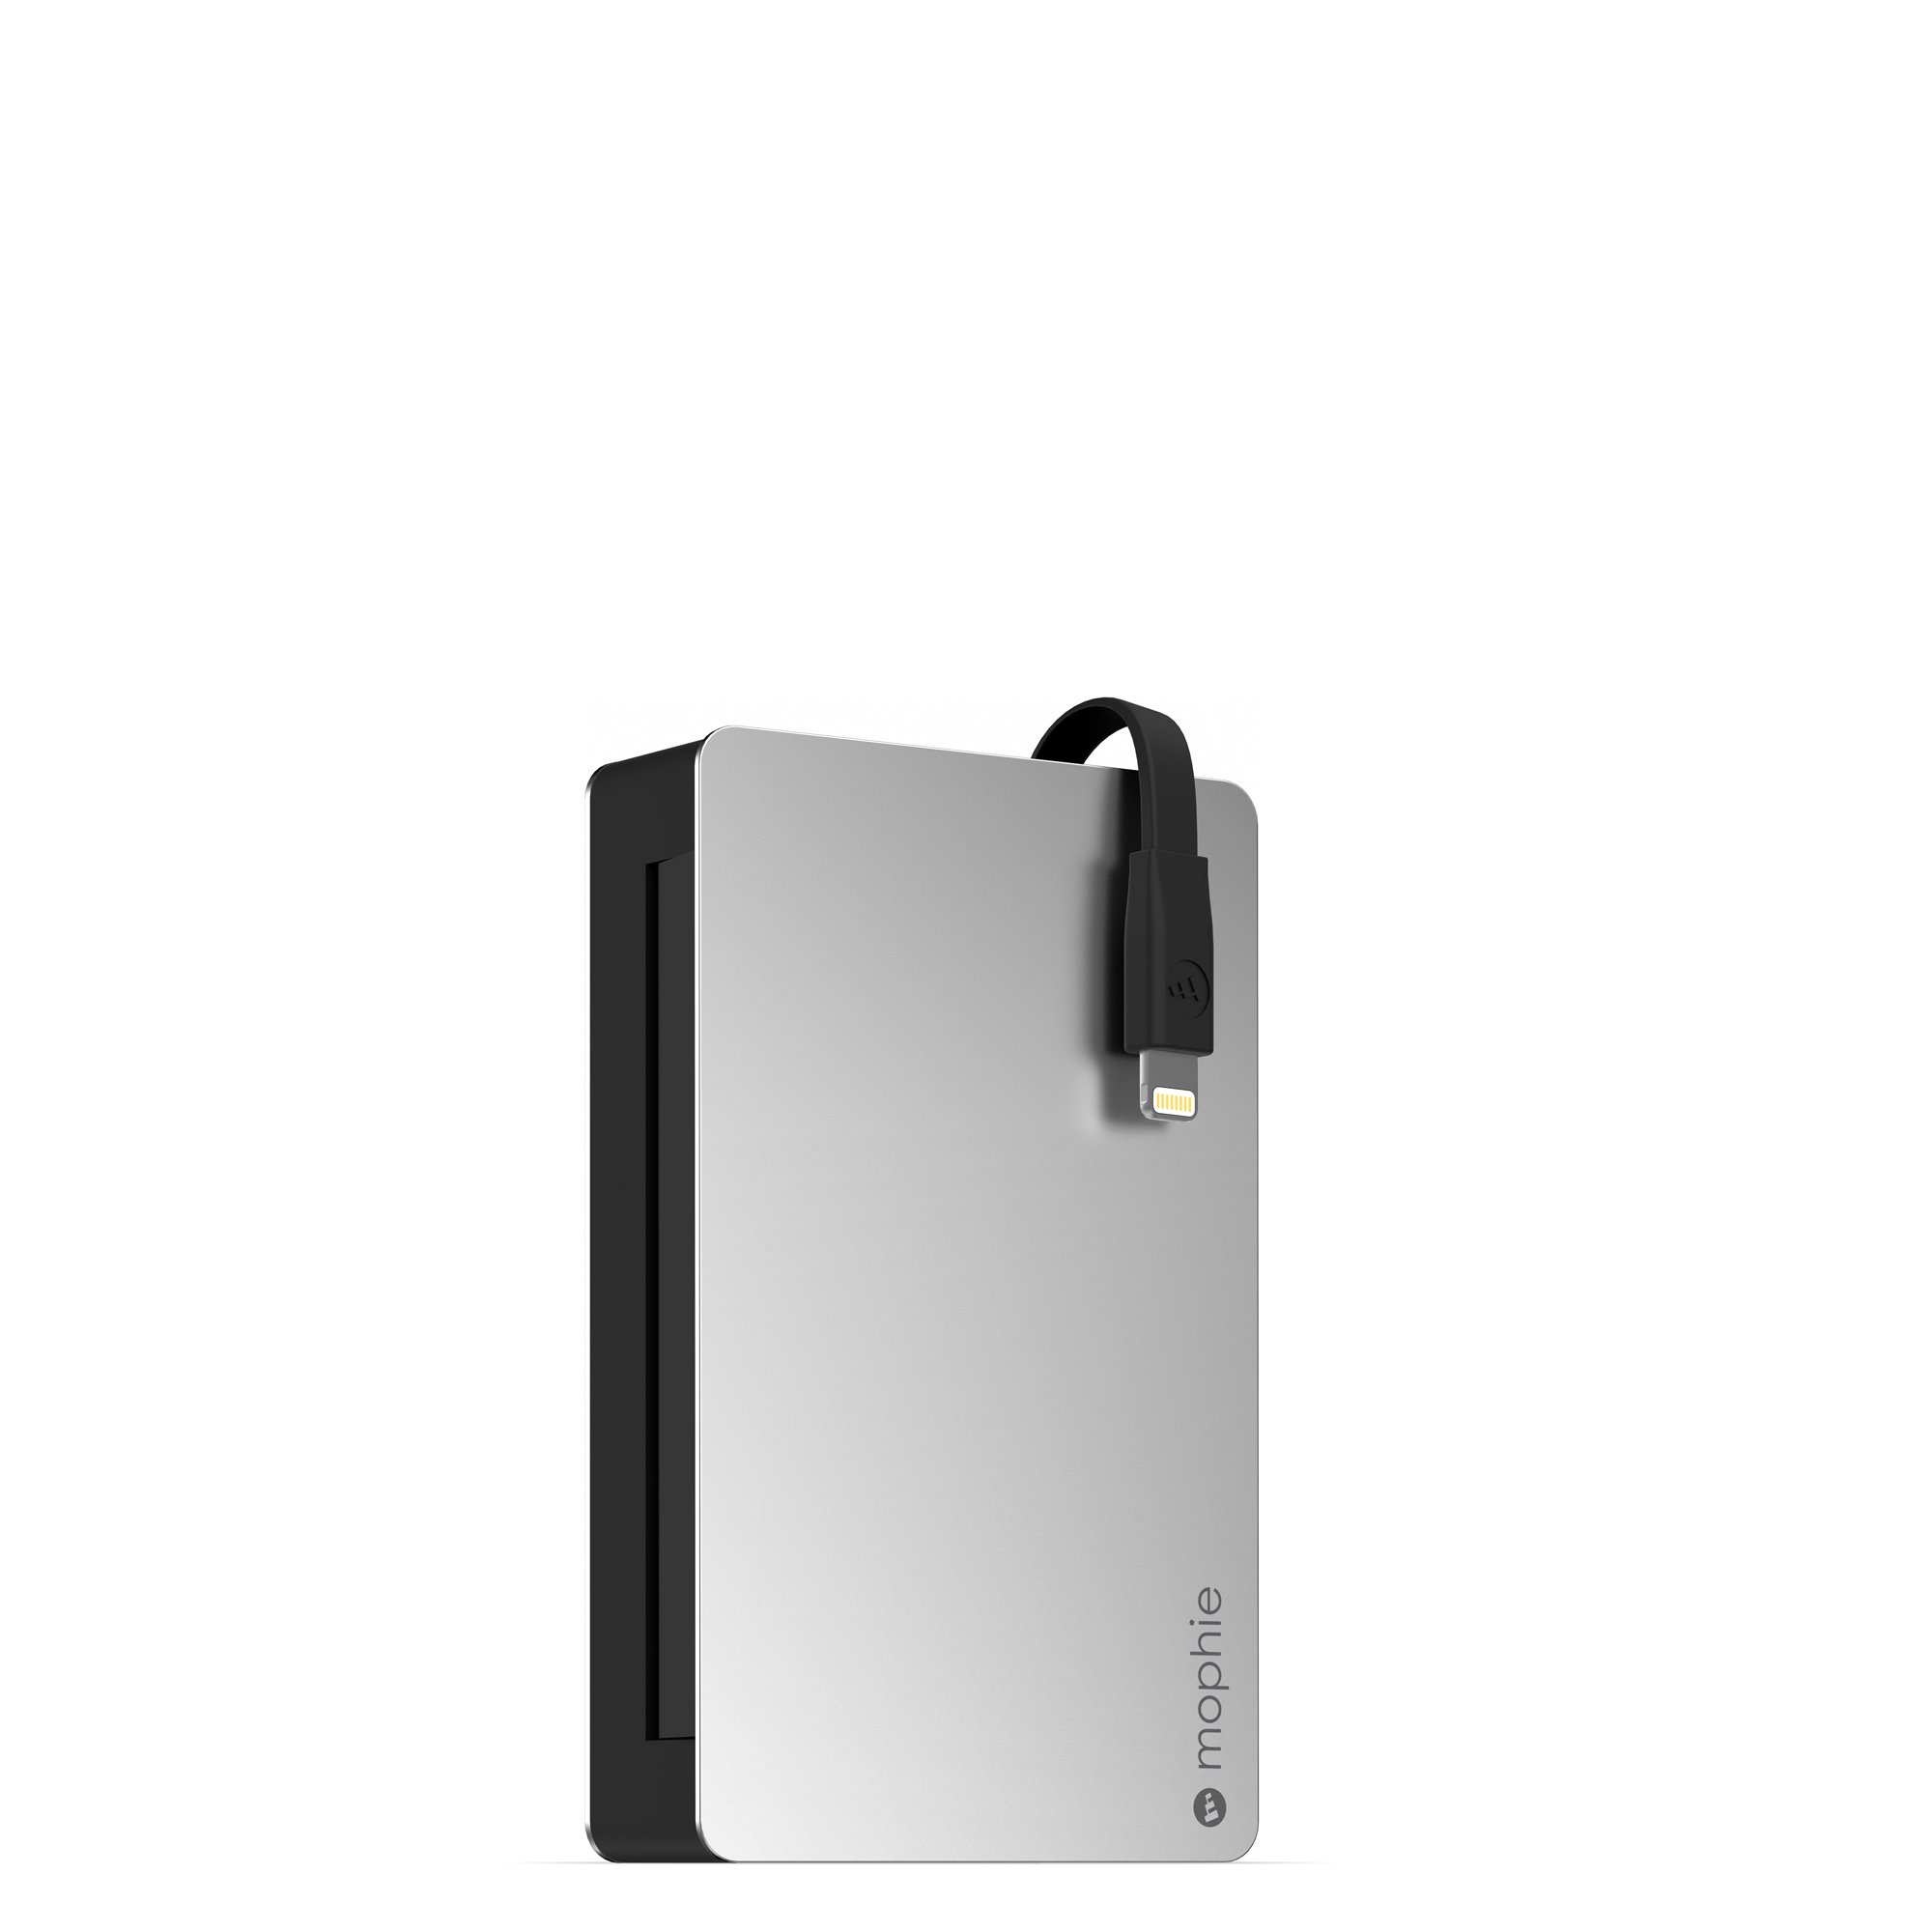 mophie Powerstation Plus 4X with Lightning Connector (7,000mAh) - Black